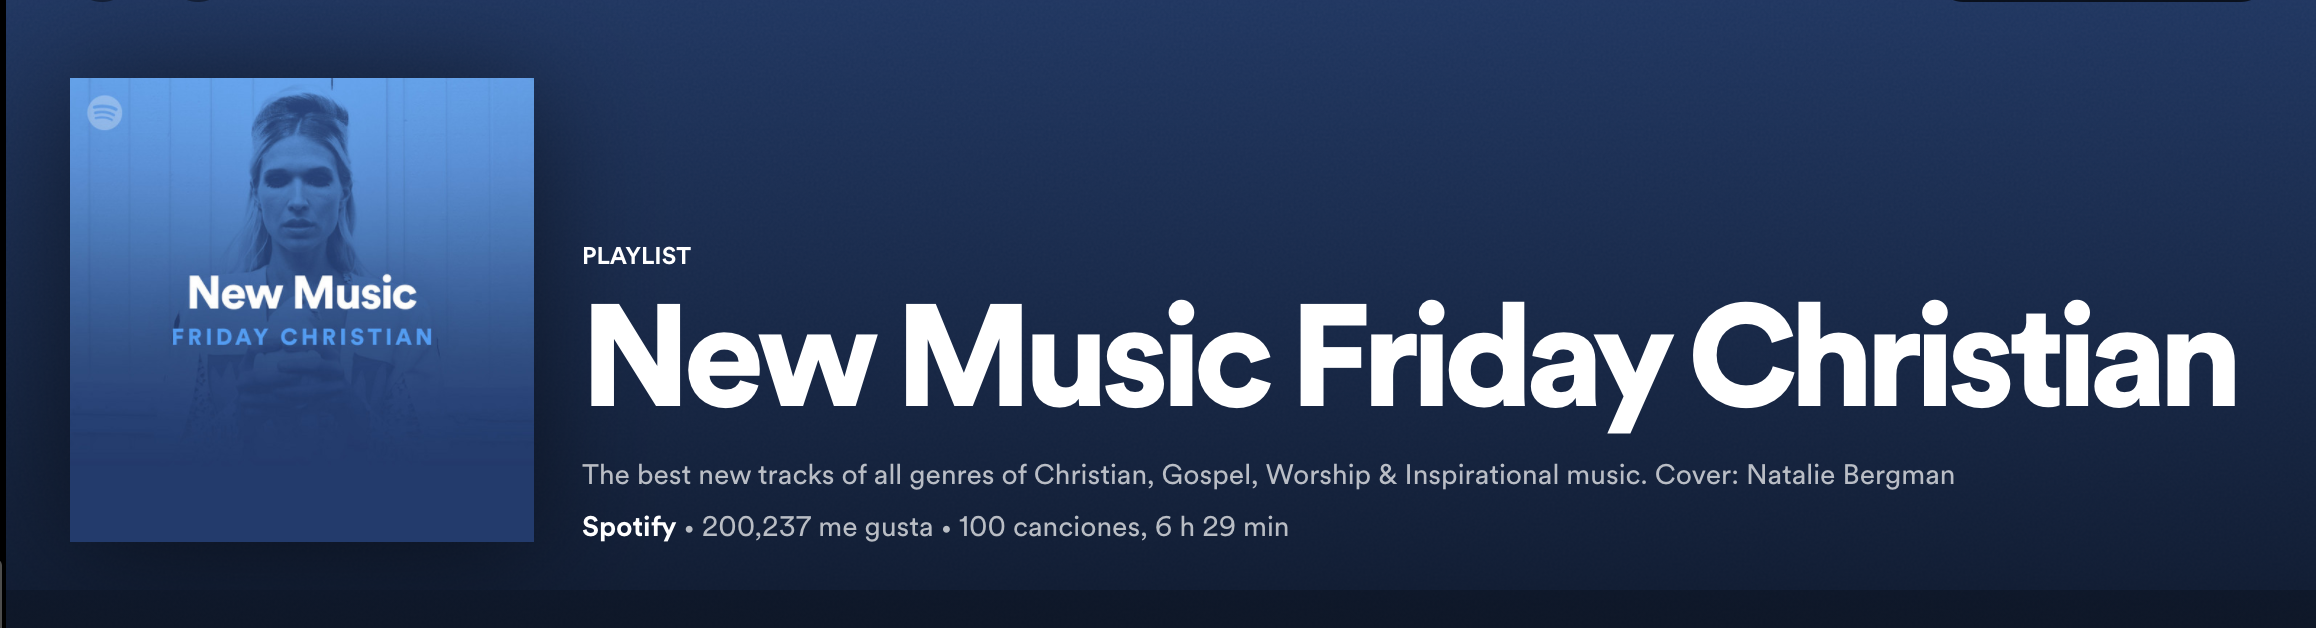 Tonja Rose's New Music Featured on 'New Music Friday Christian' (Spotify playlist)